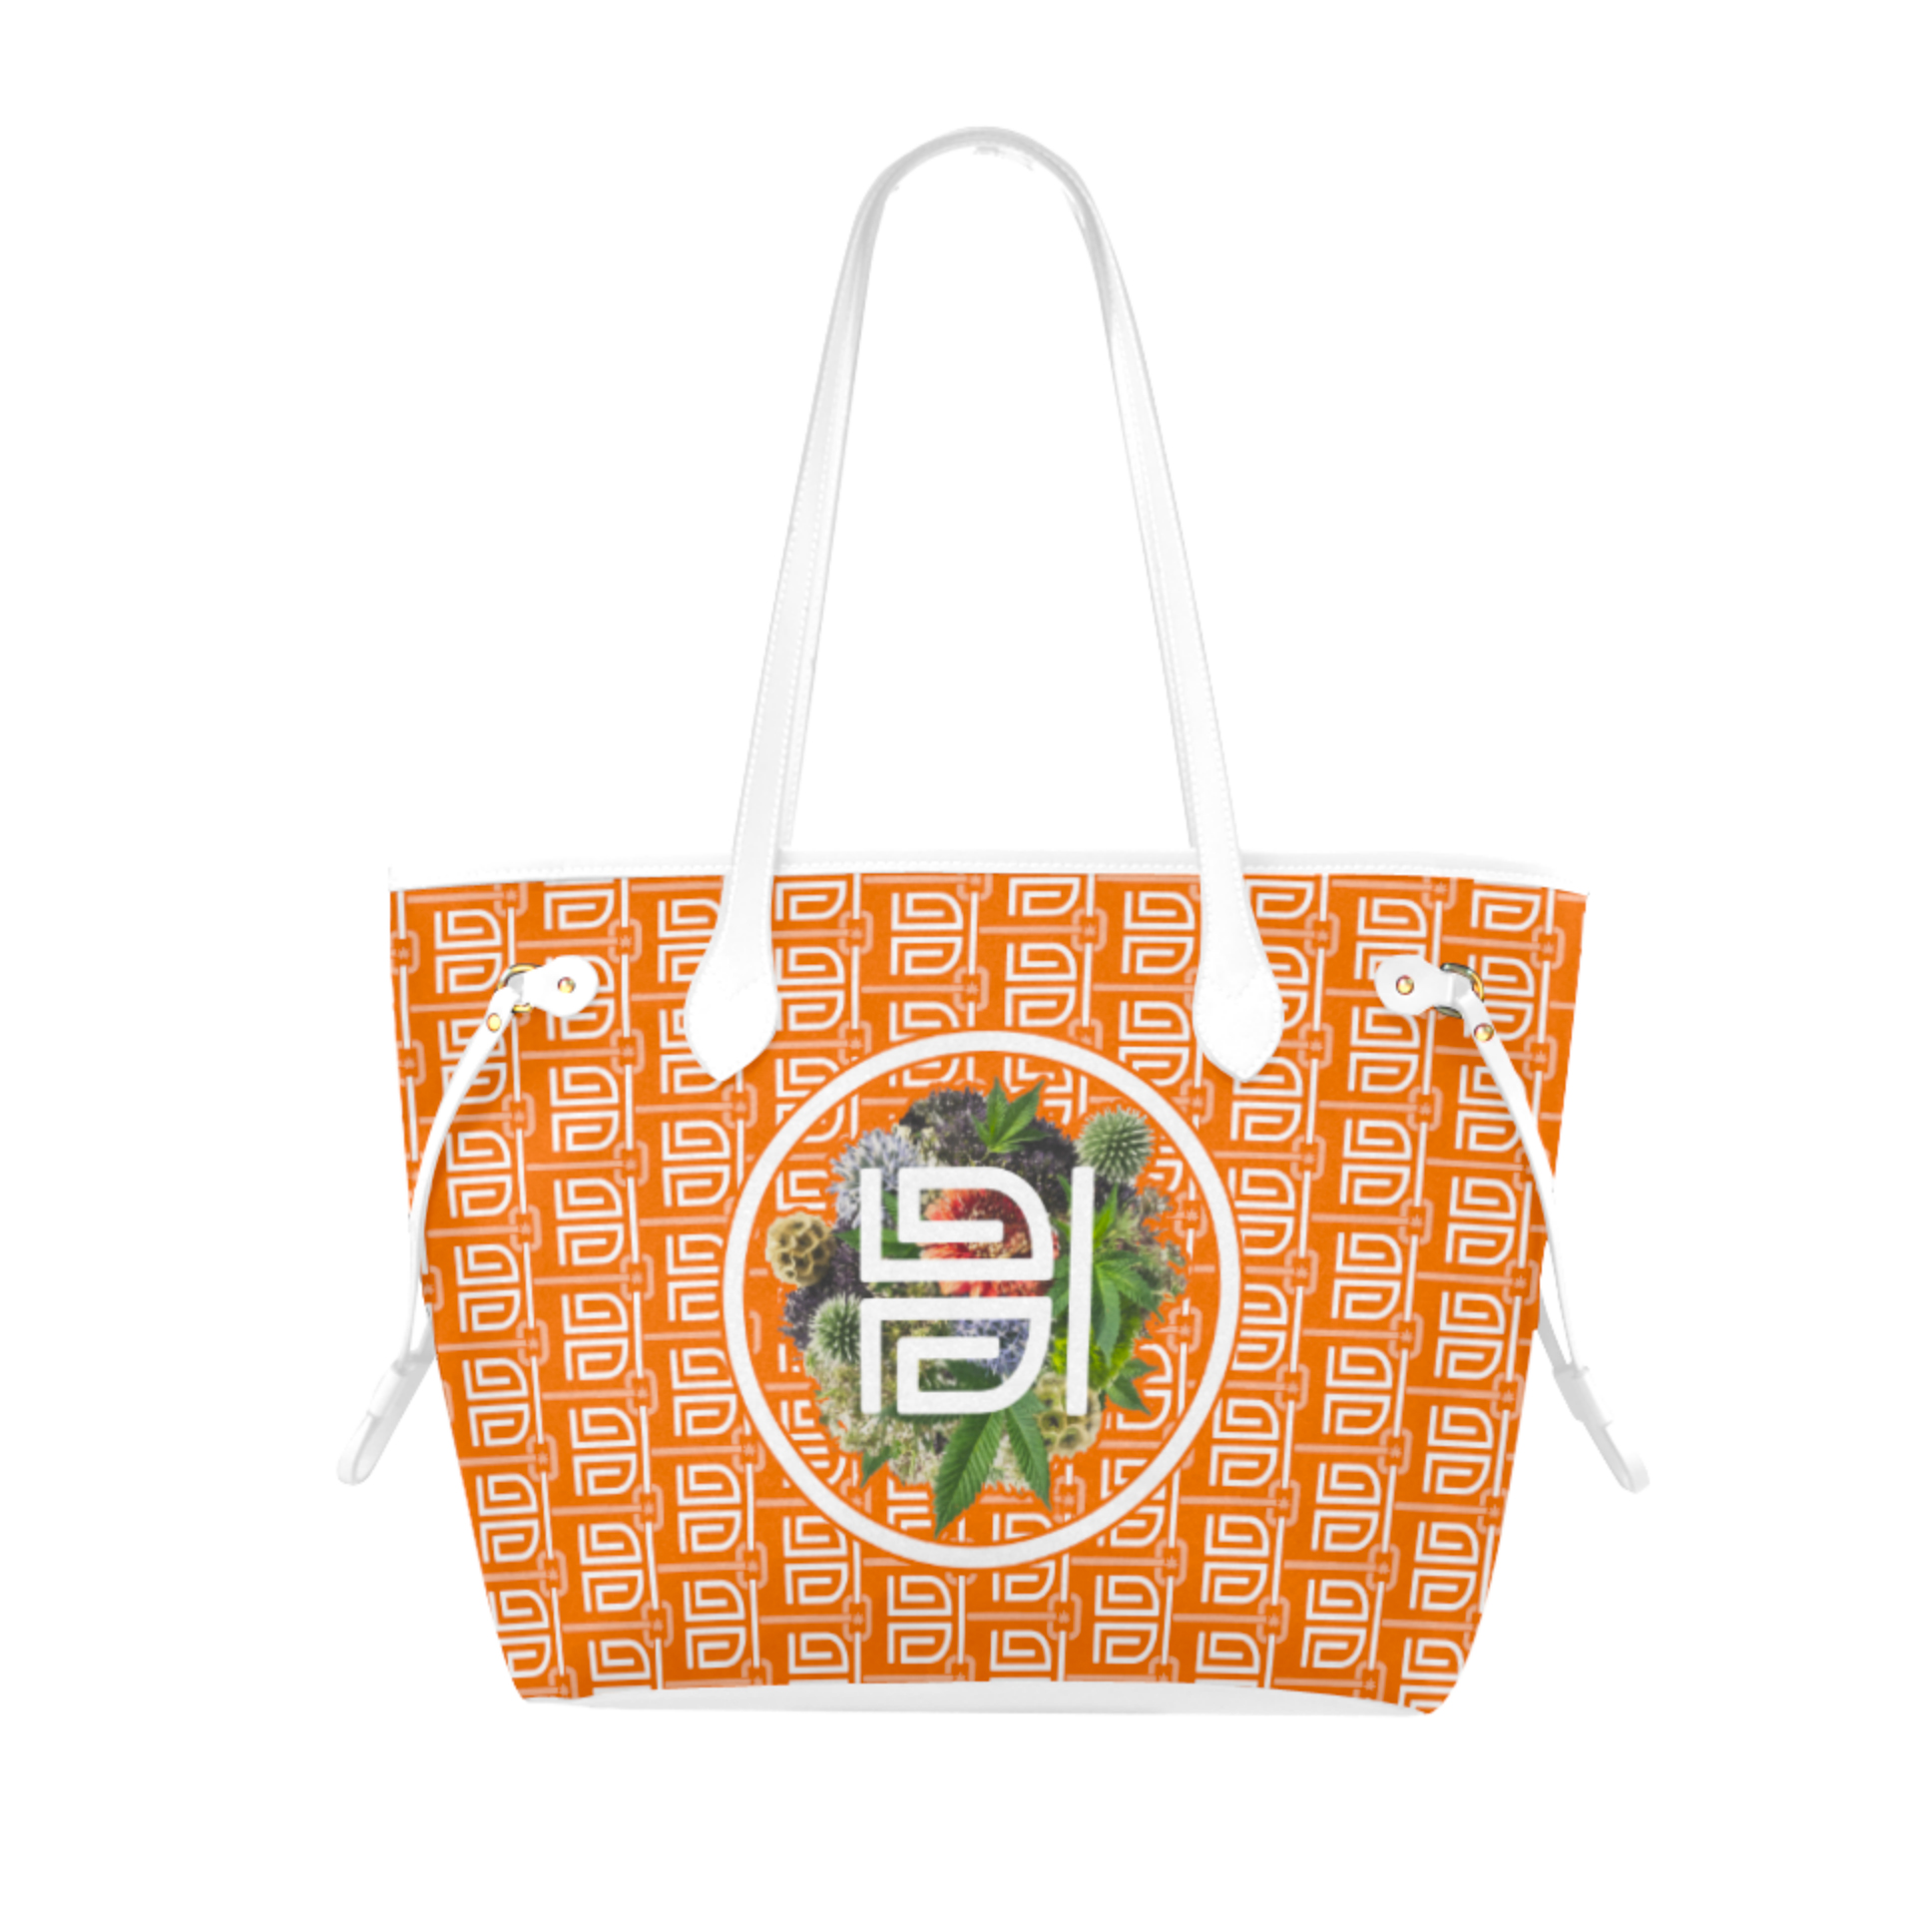 highest bitch_ just get high_fashion tote_orange a